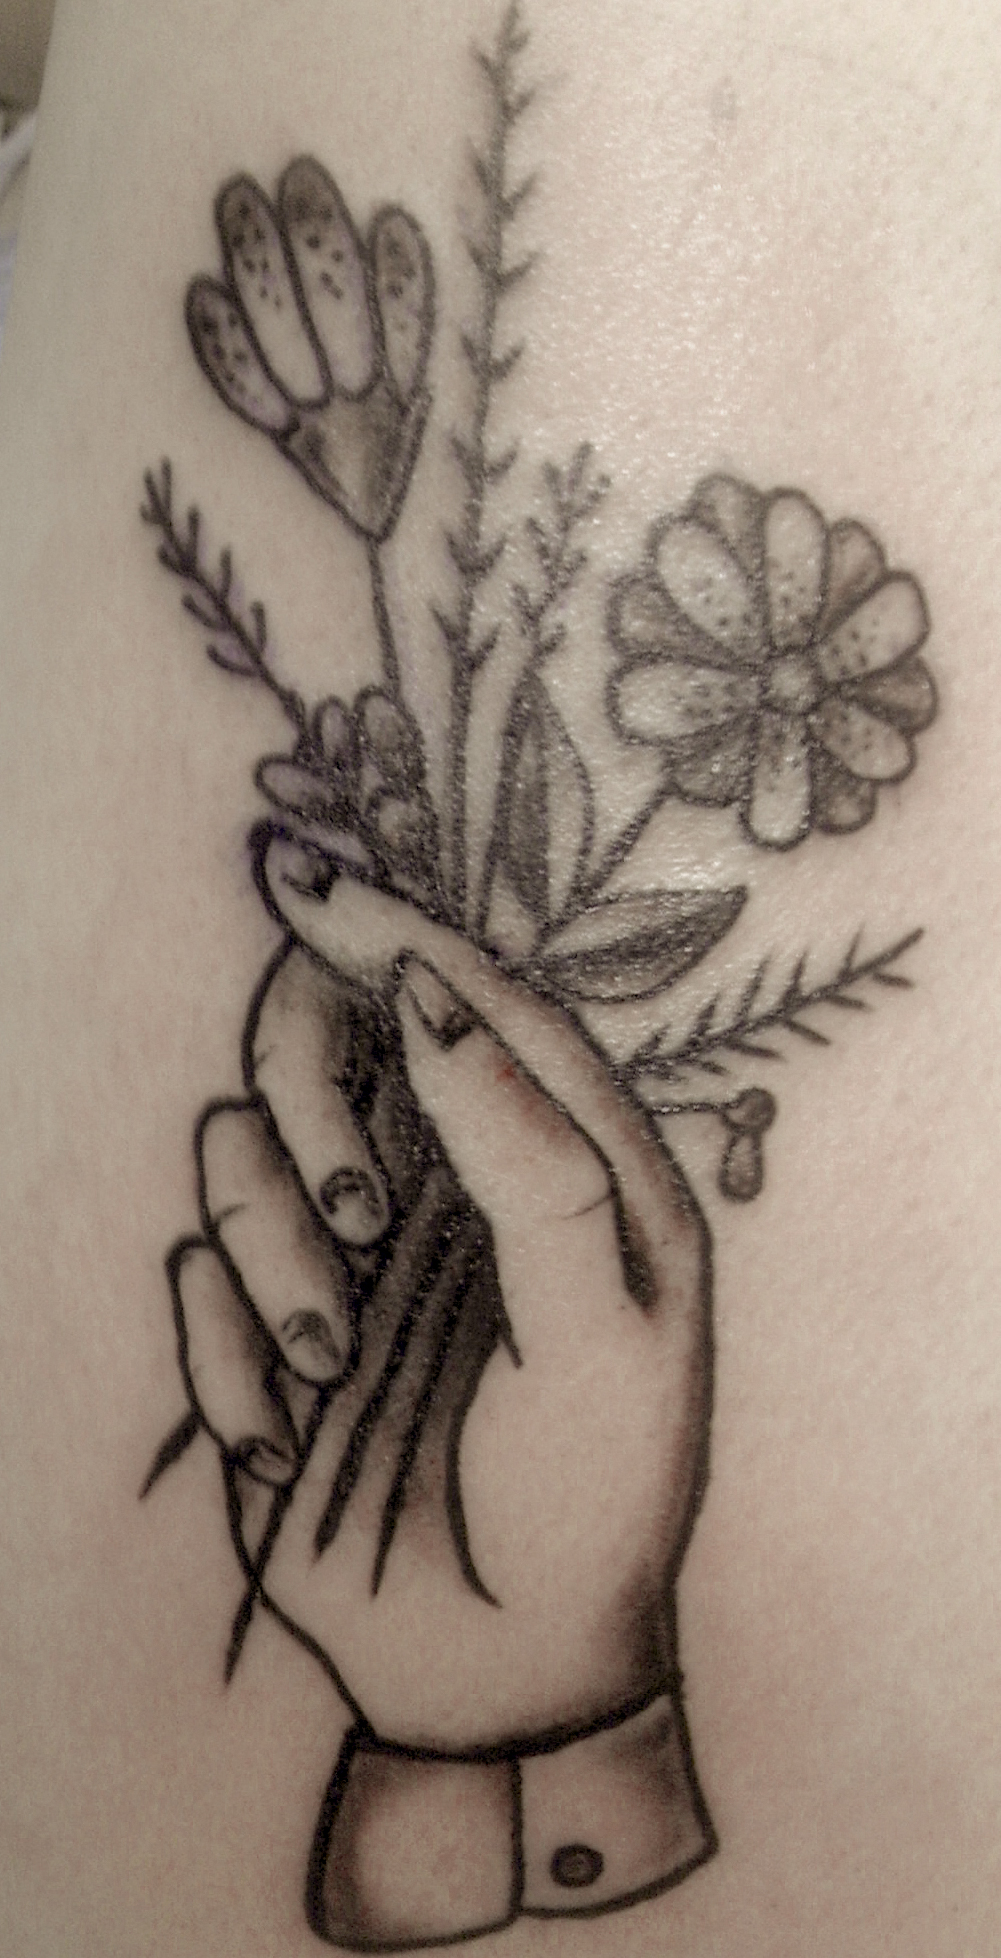 Tattoo shops greg james tattoos deluxe page 2 flowerhand izmirmasajfo Choice Image